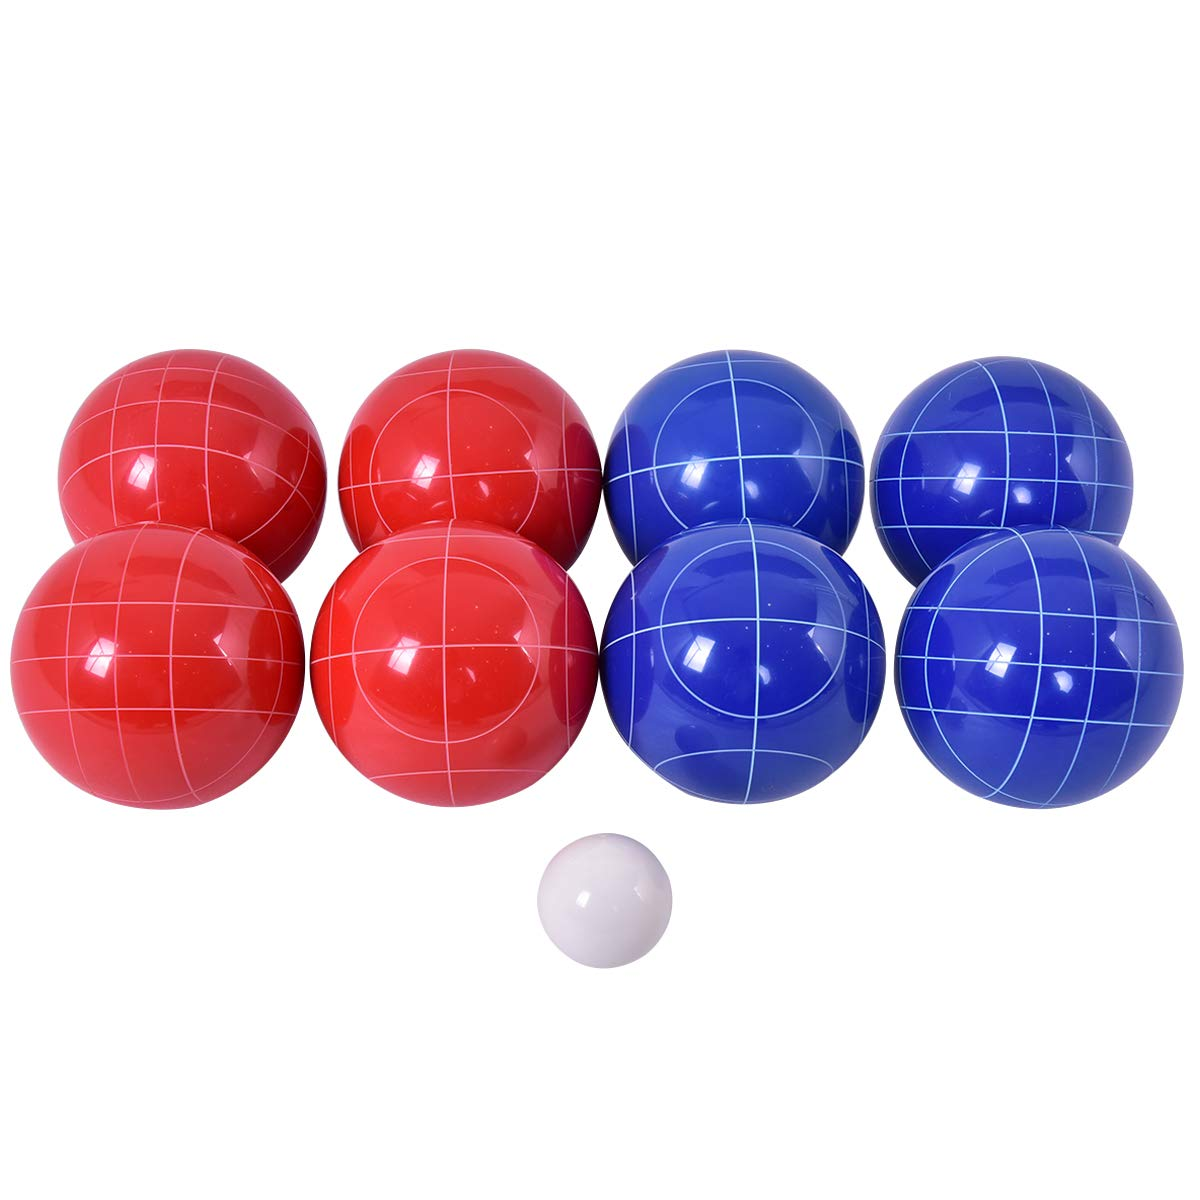 GYMAX Bocce Ball Set, Sports Resin Bocce Balls with 8 Balls Pallino for Outdoor Backyard, Lawn, Beach by GYMAX (Image #1)